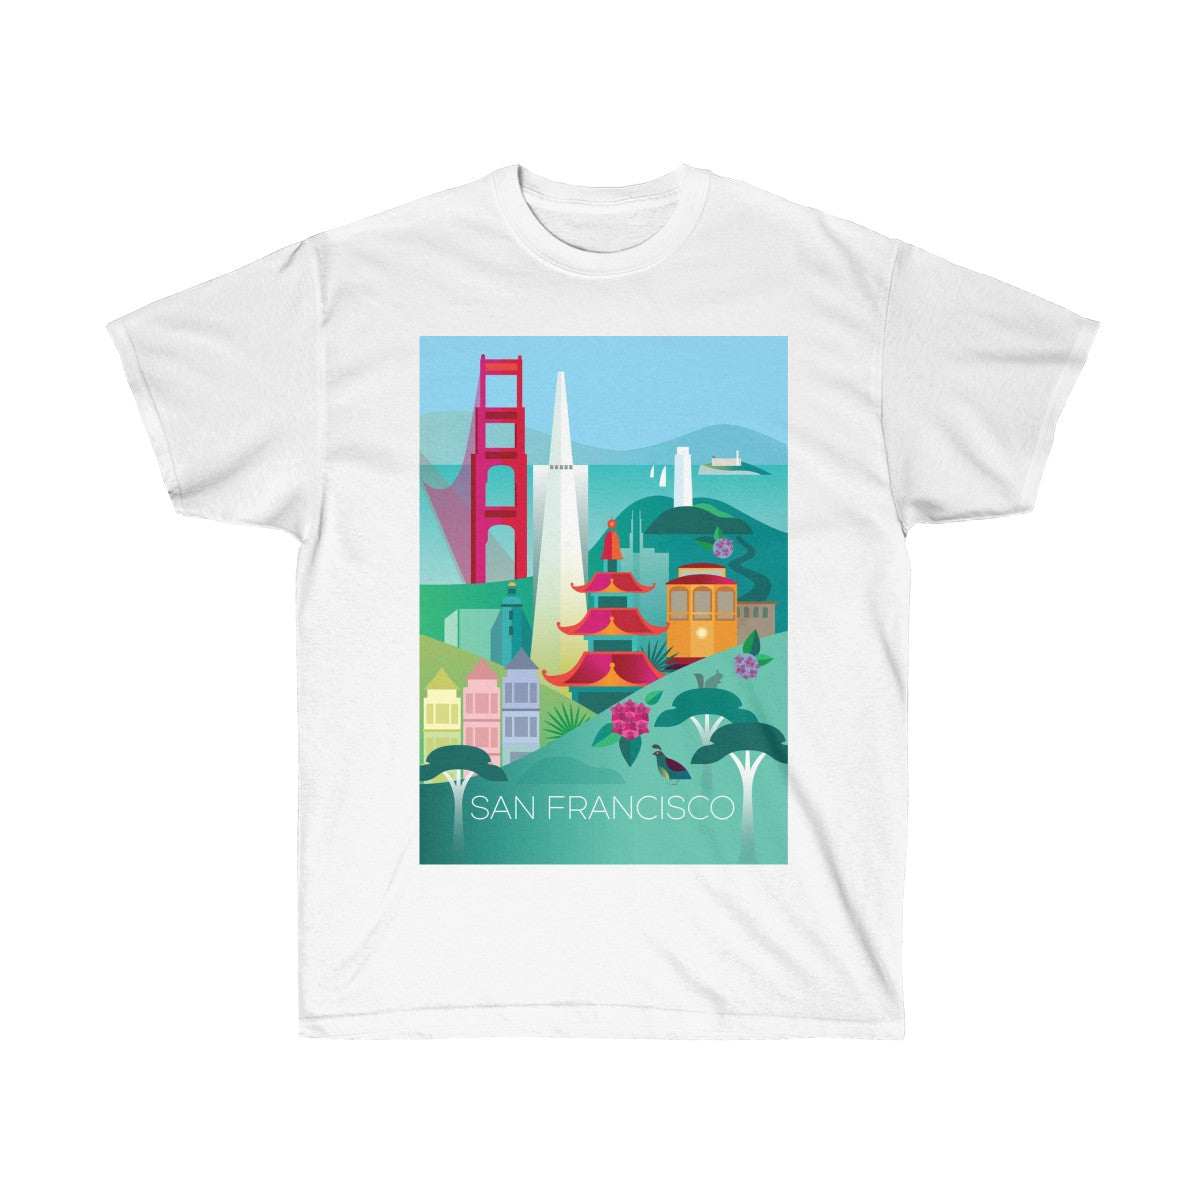 SAN FRANCISCO UNISEX ULTRA COTTON TEE